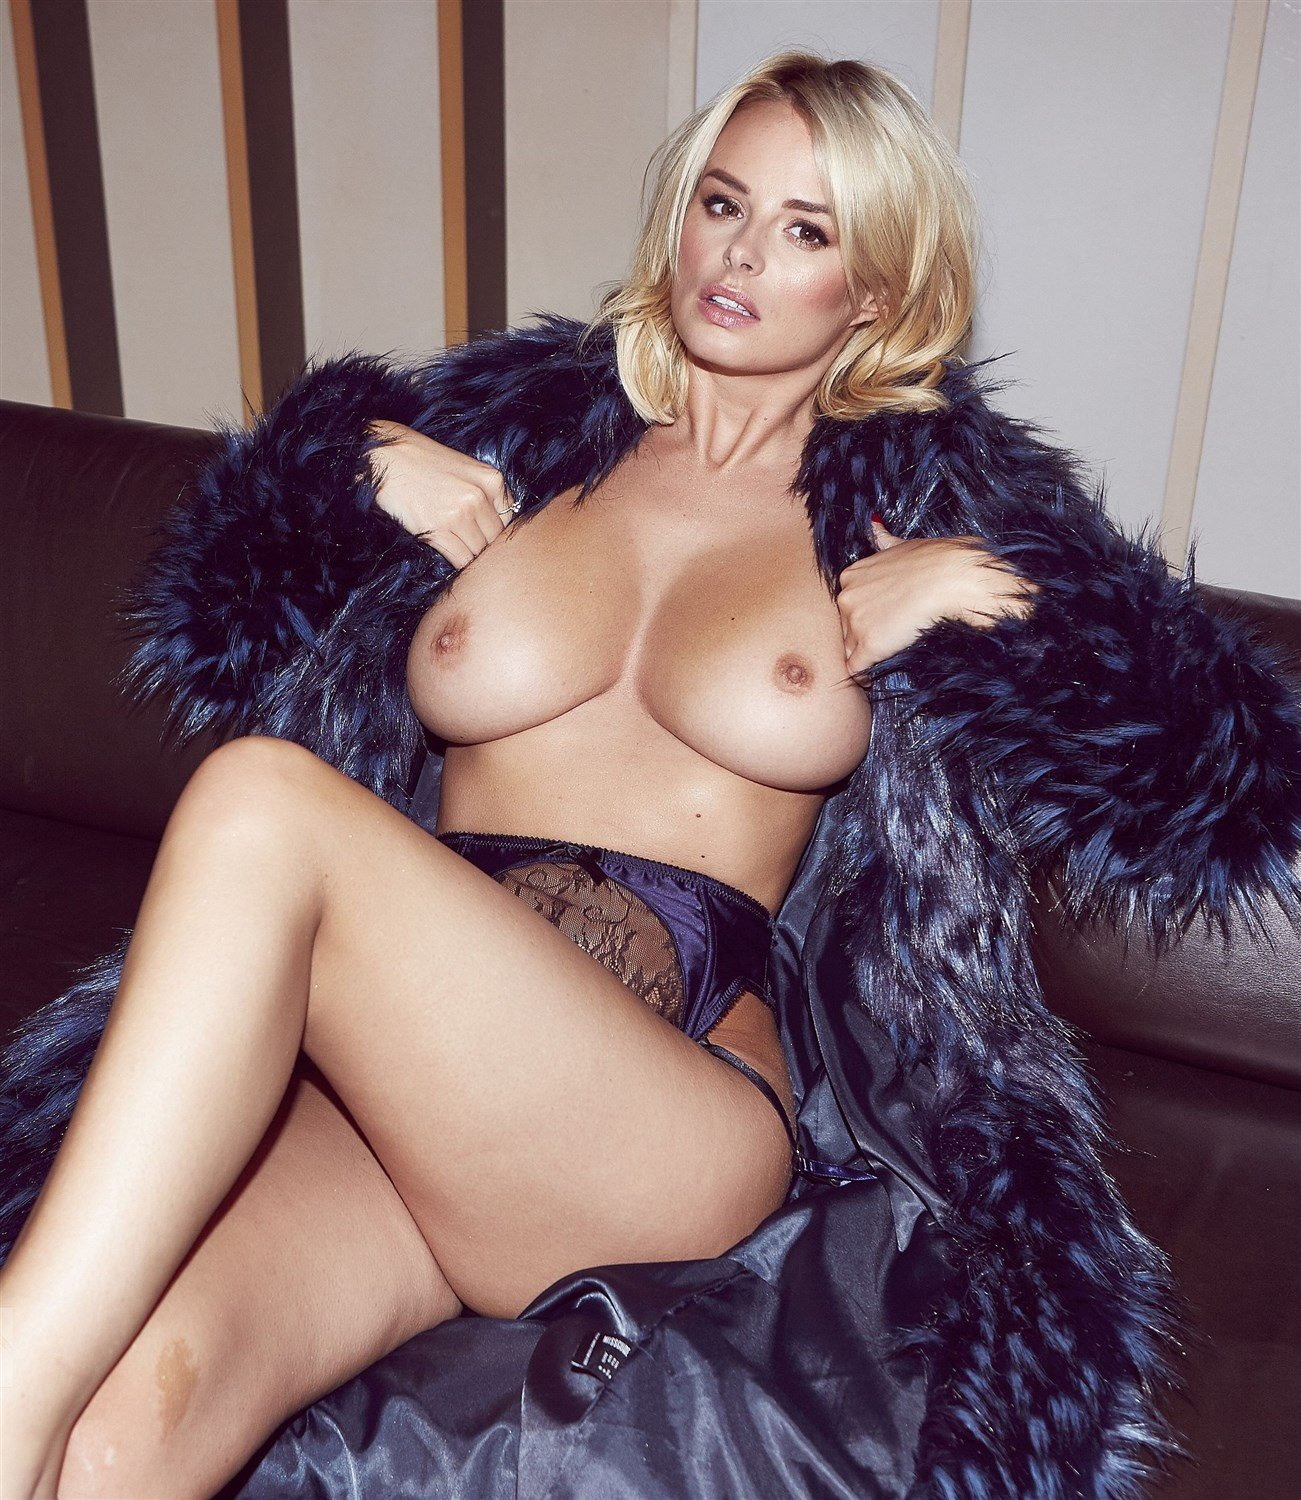 Rhian Sugden Nude Outtakes Show Her Pussy For The First Time